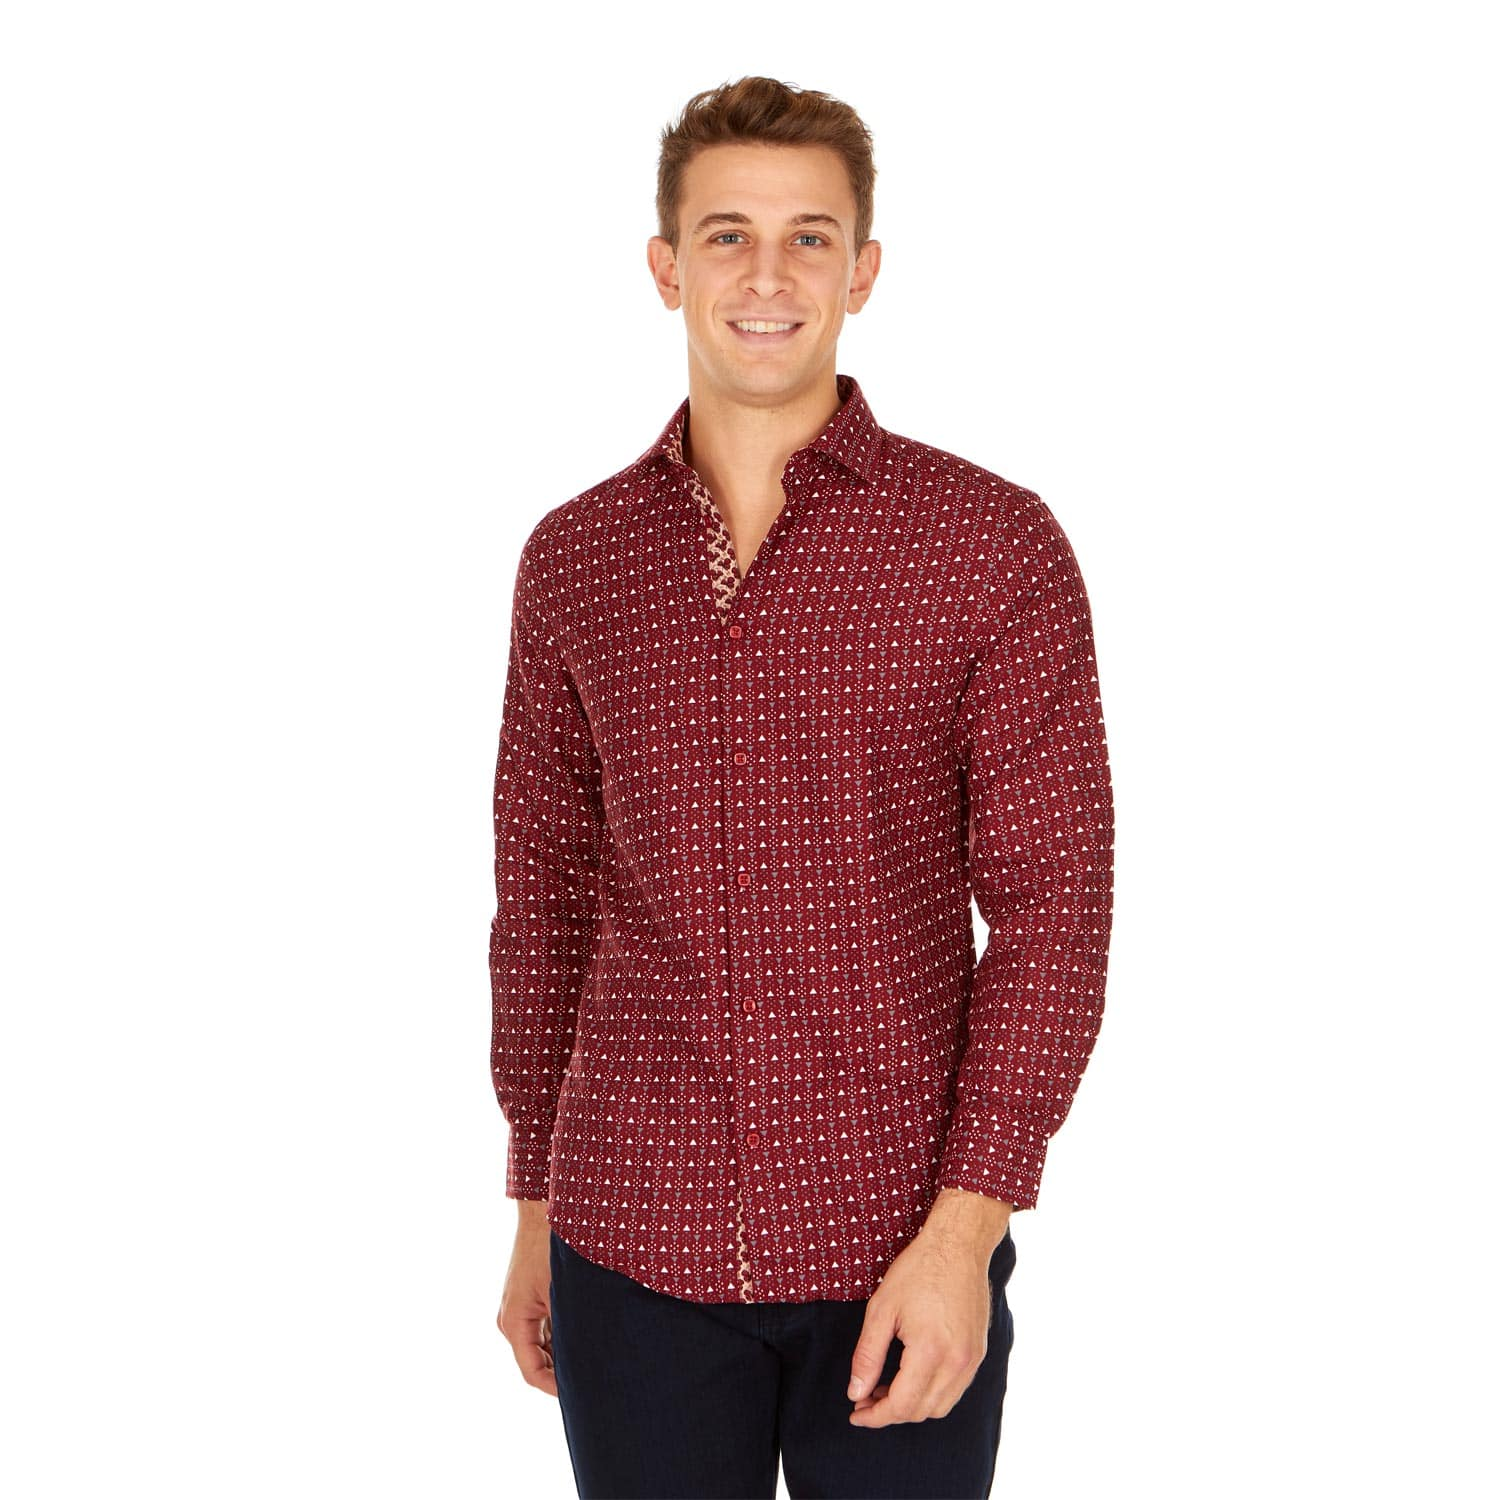 Men's Slim Fit Winter Designable Printed Long Sleeve Button Down Shirt - $12.74 + Free Shipping